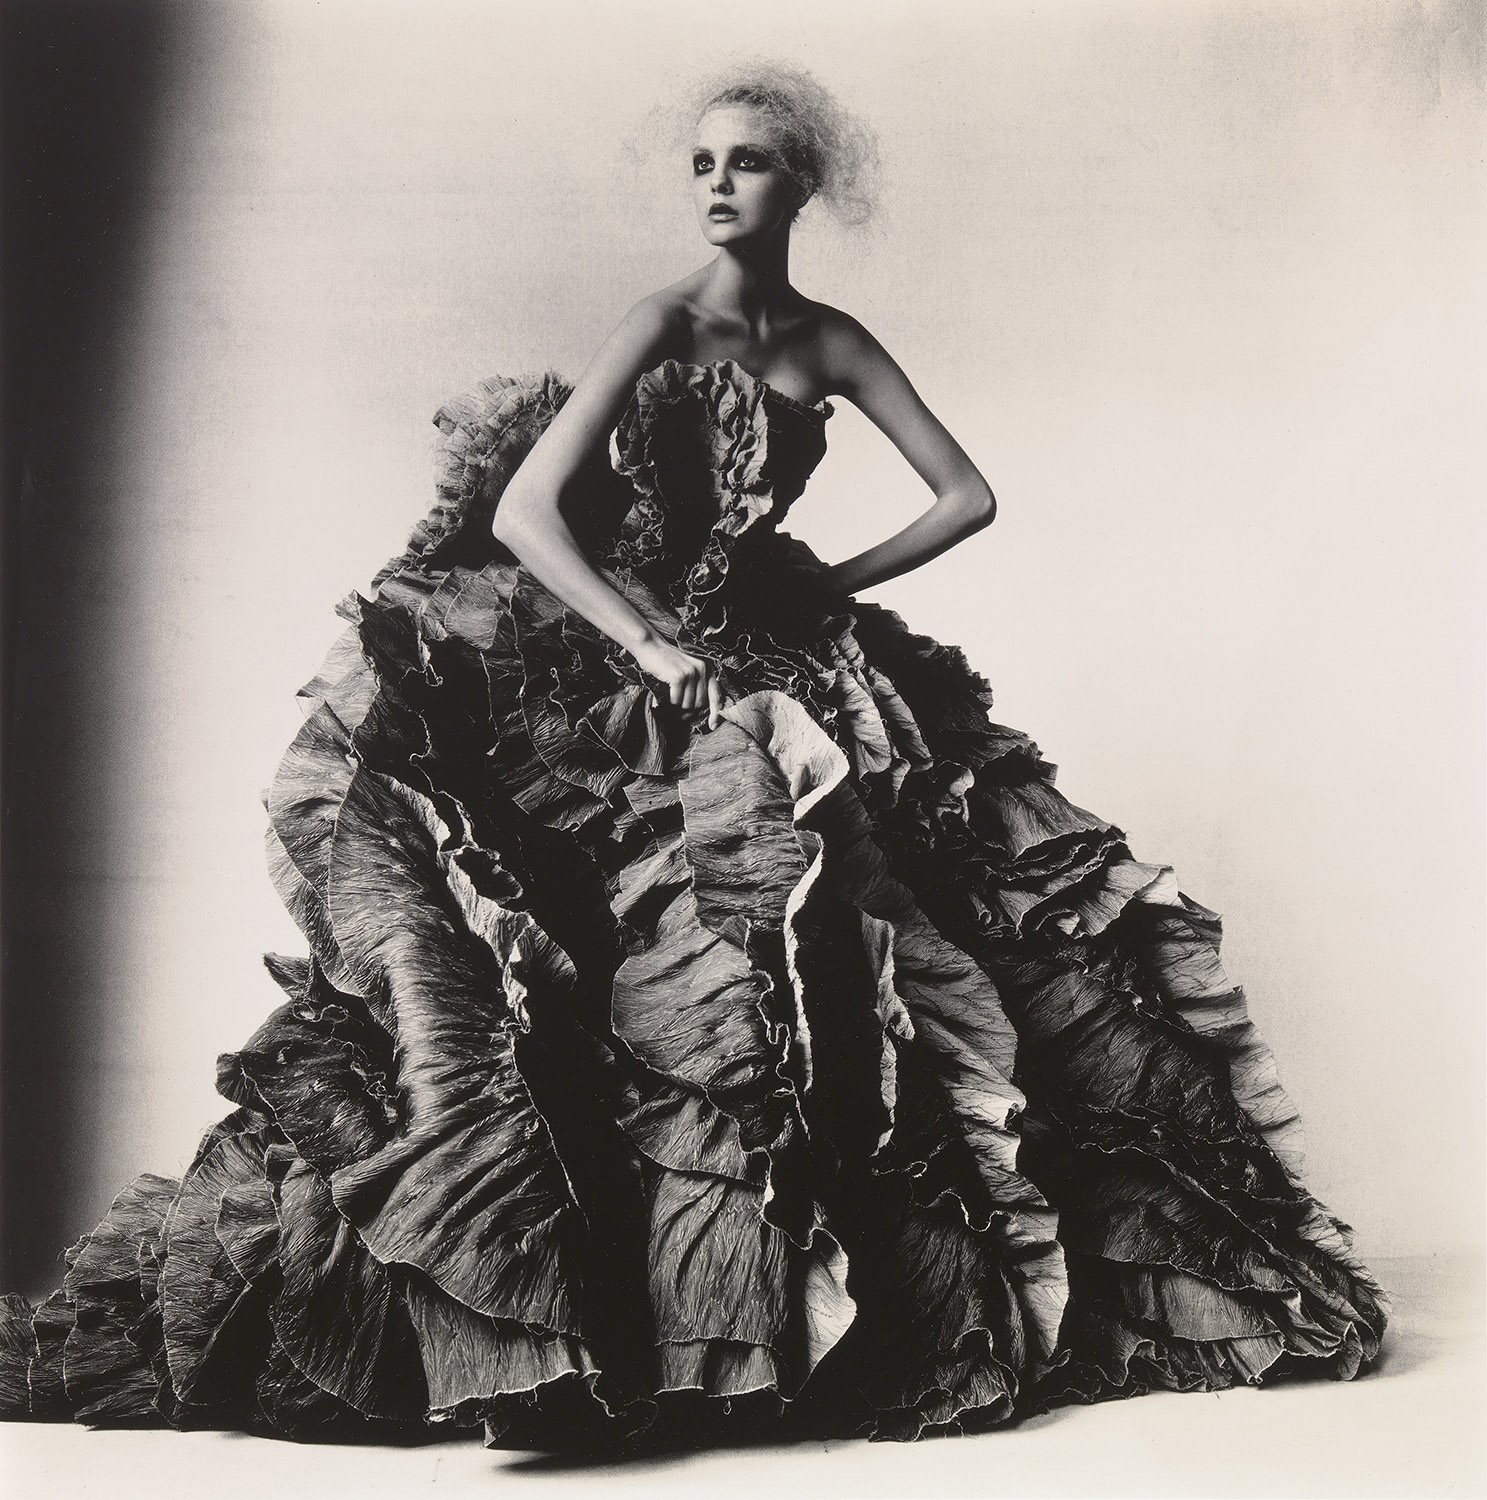 Irving Penn, Ball Dress by Olivier Theyskens for Nina Ricci, New York, 2007, Smithsonian American Art Museum, Gift of The Irving Penn Foundation. Copyright © Condé Nast